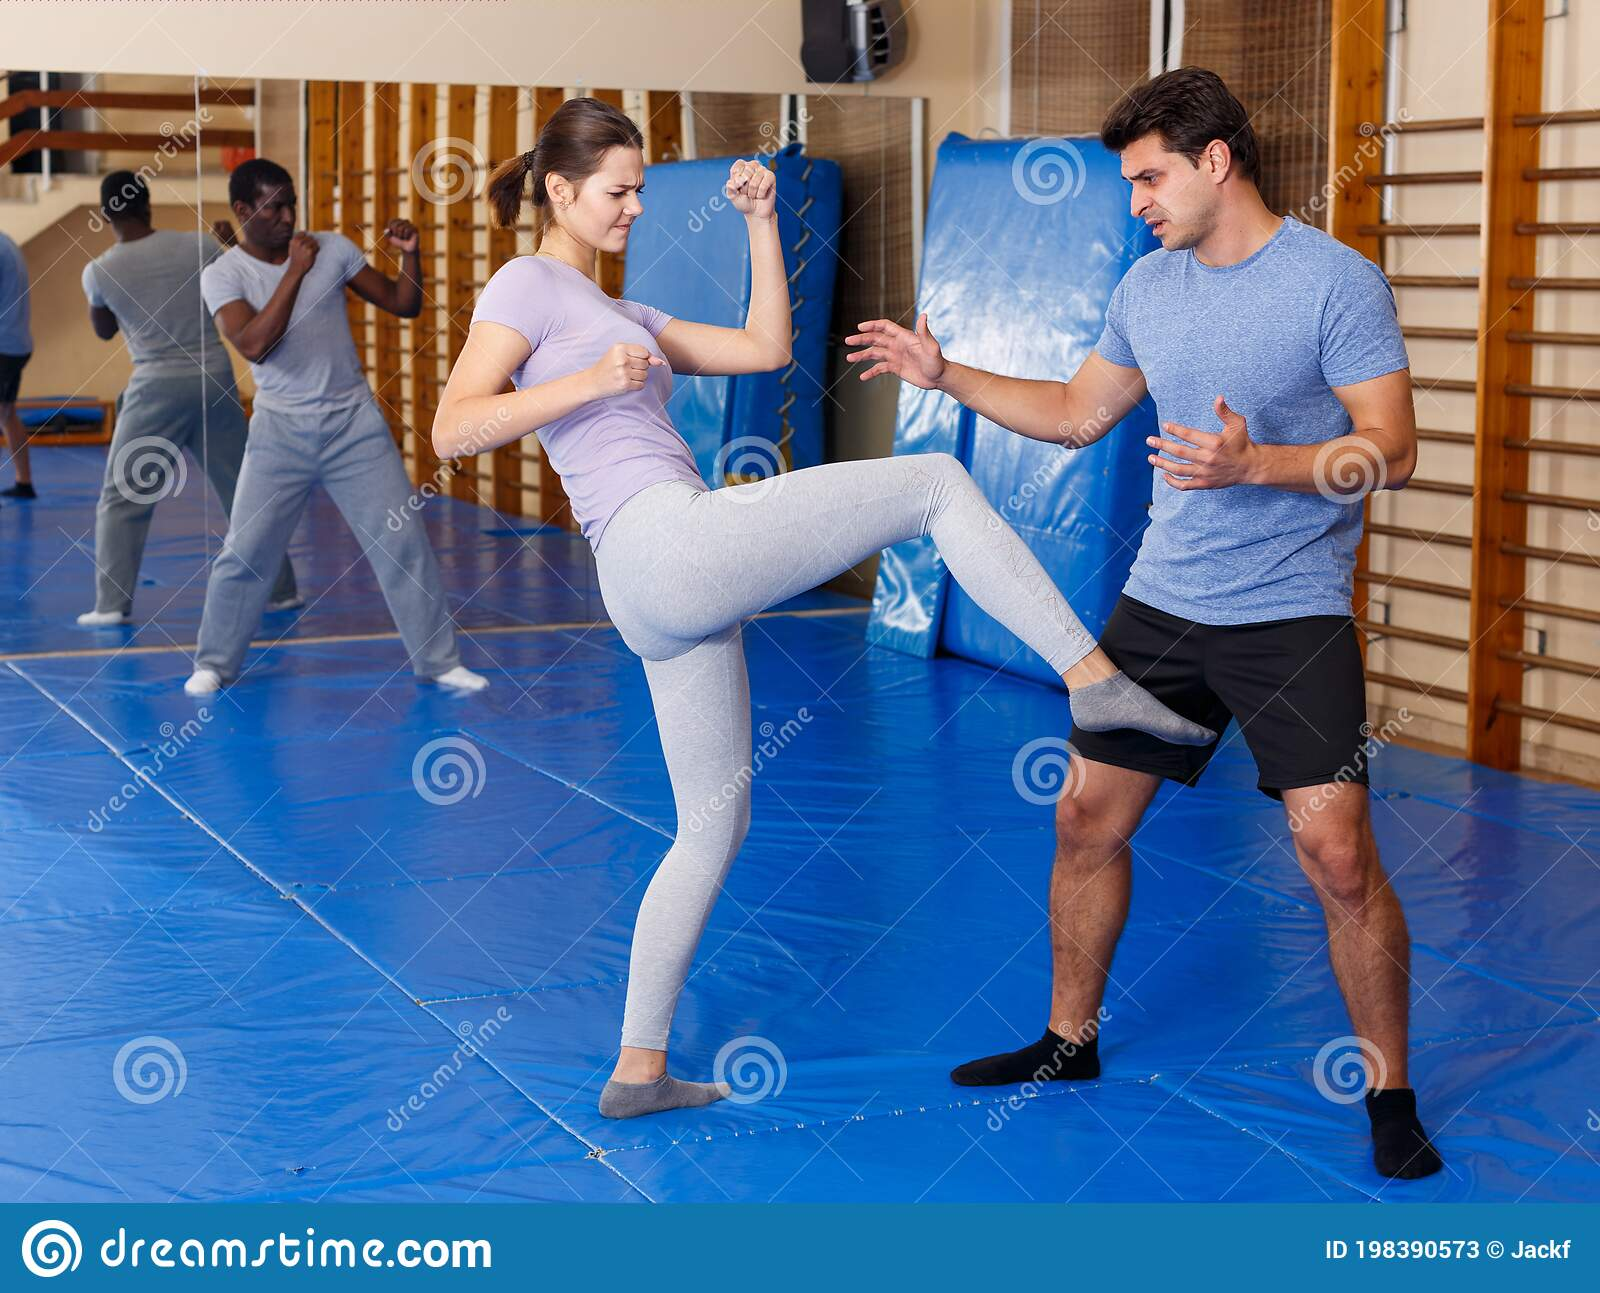 People Practicing Self Defense Techniques Stock Image Image Of Karate 2030s 198390573